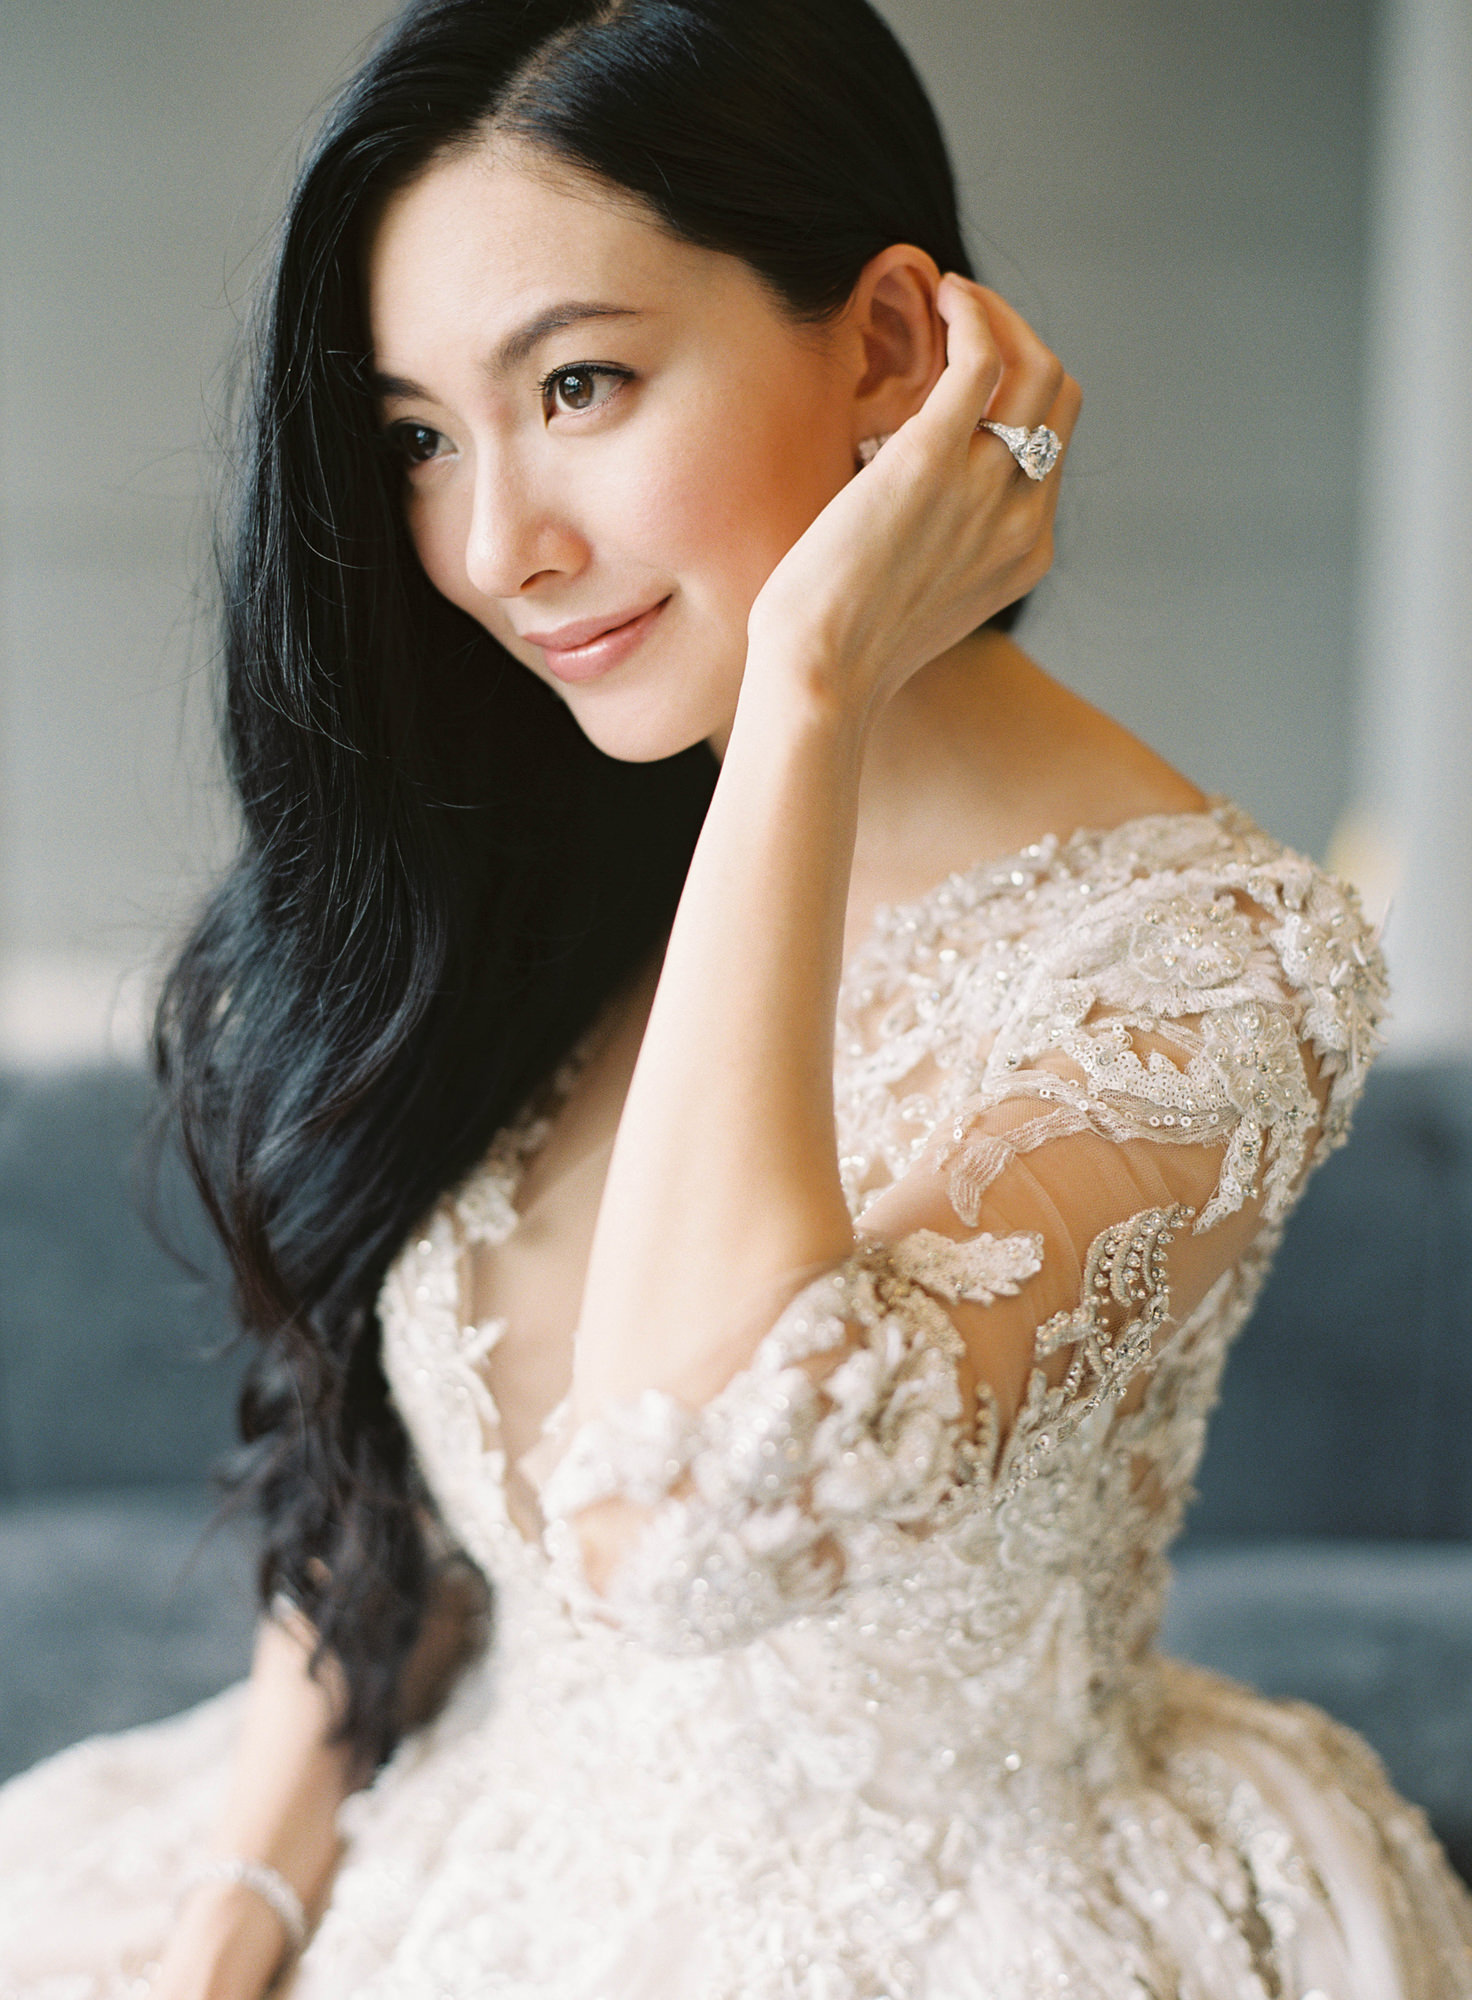 Gorgeous Asian bride with crystal applique wedding dress Jen Huang Los Angeles wedding photographer